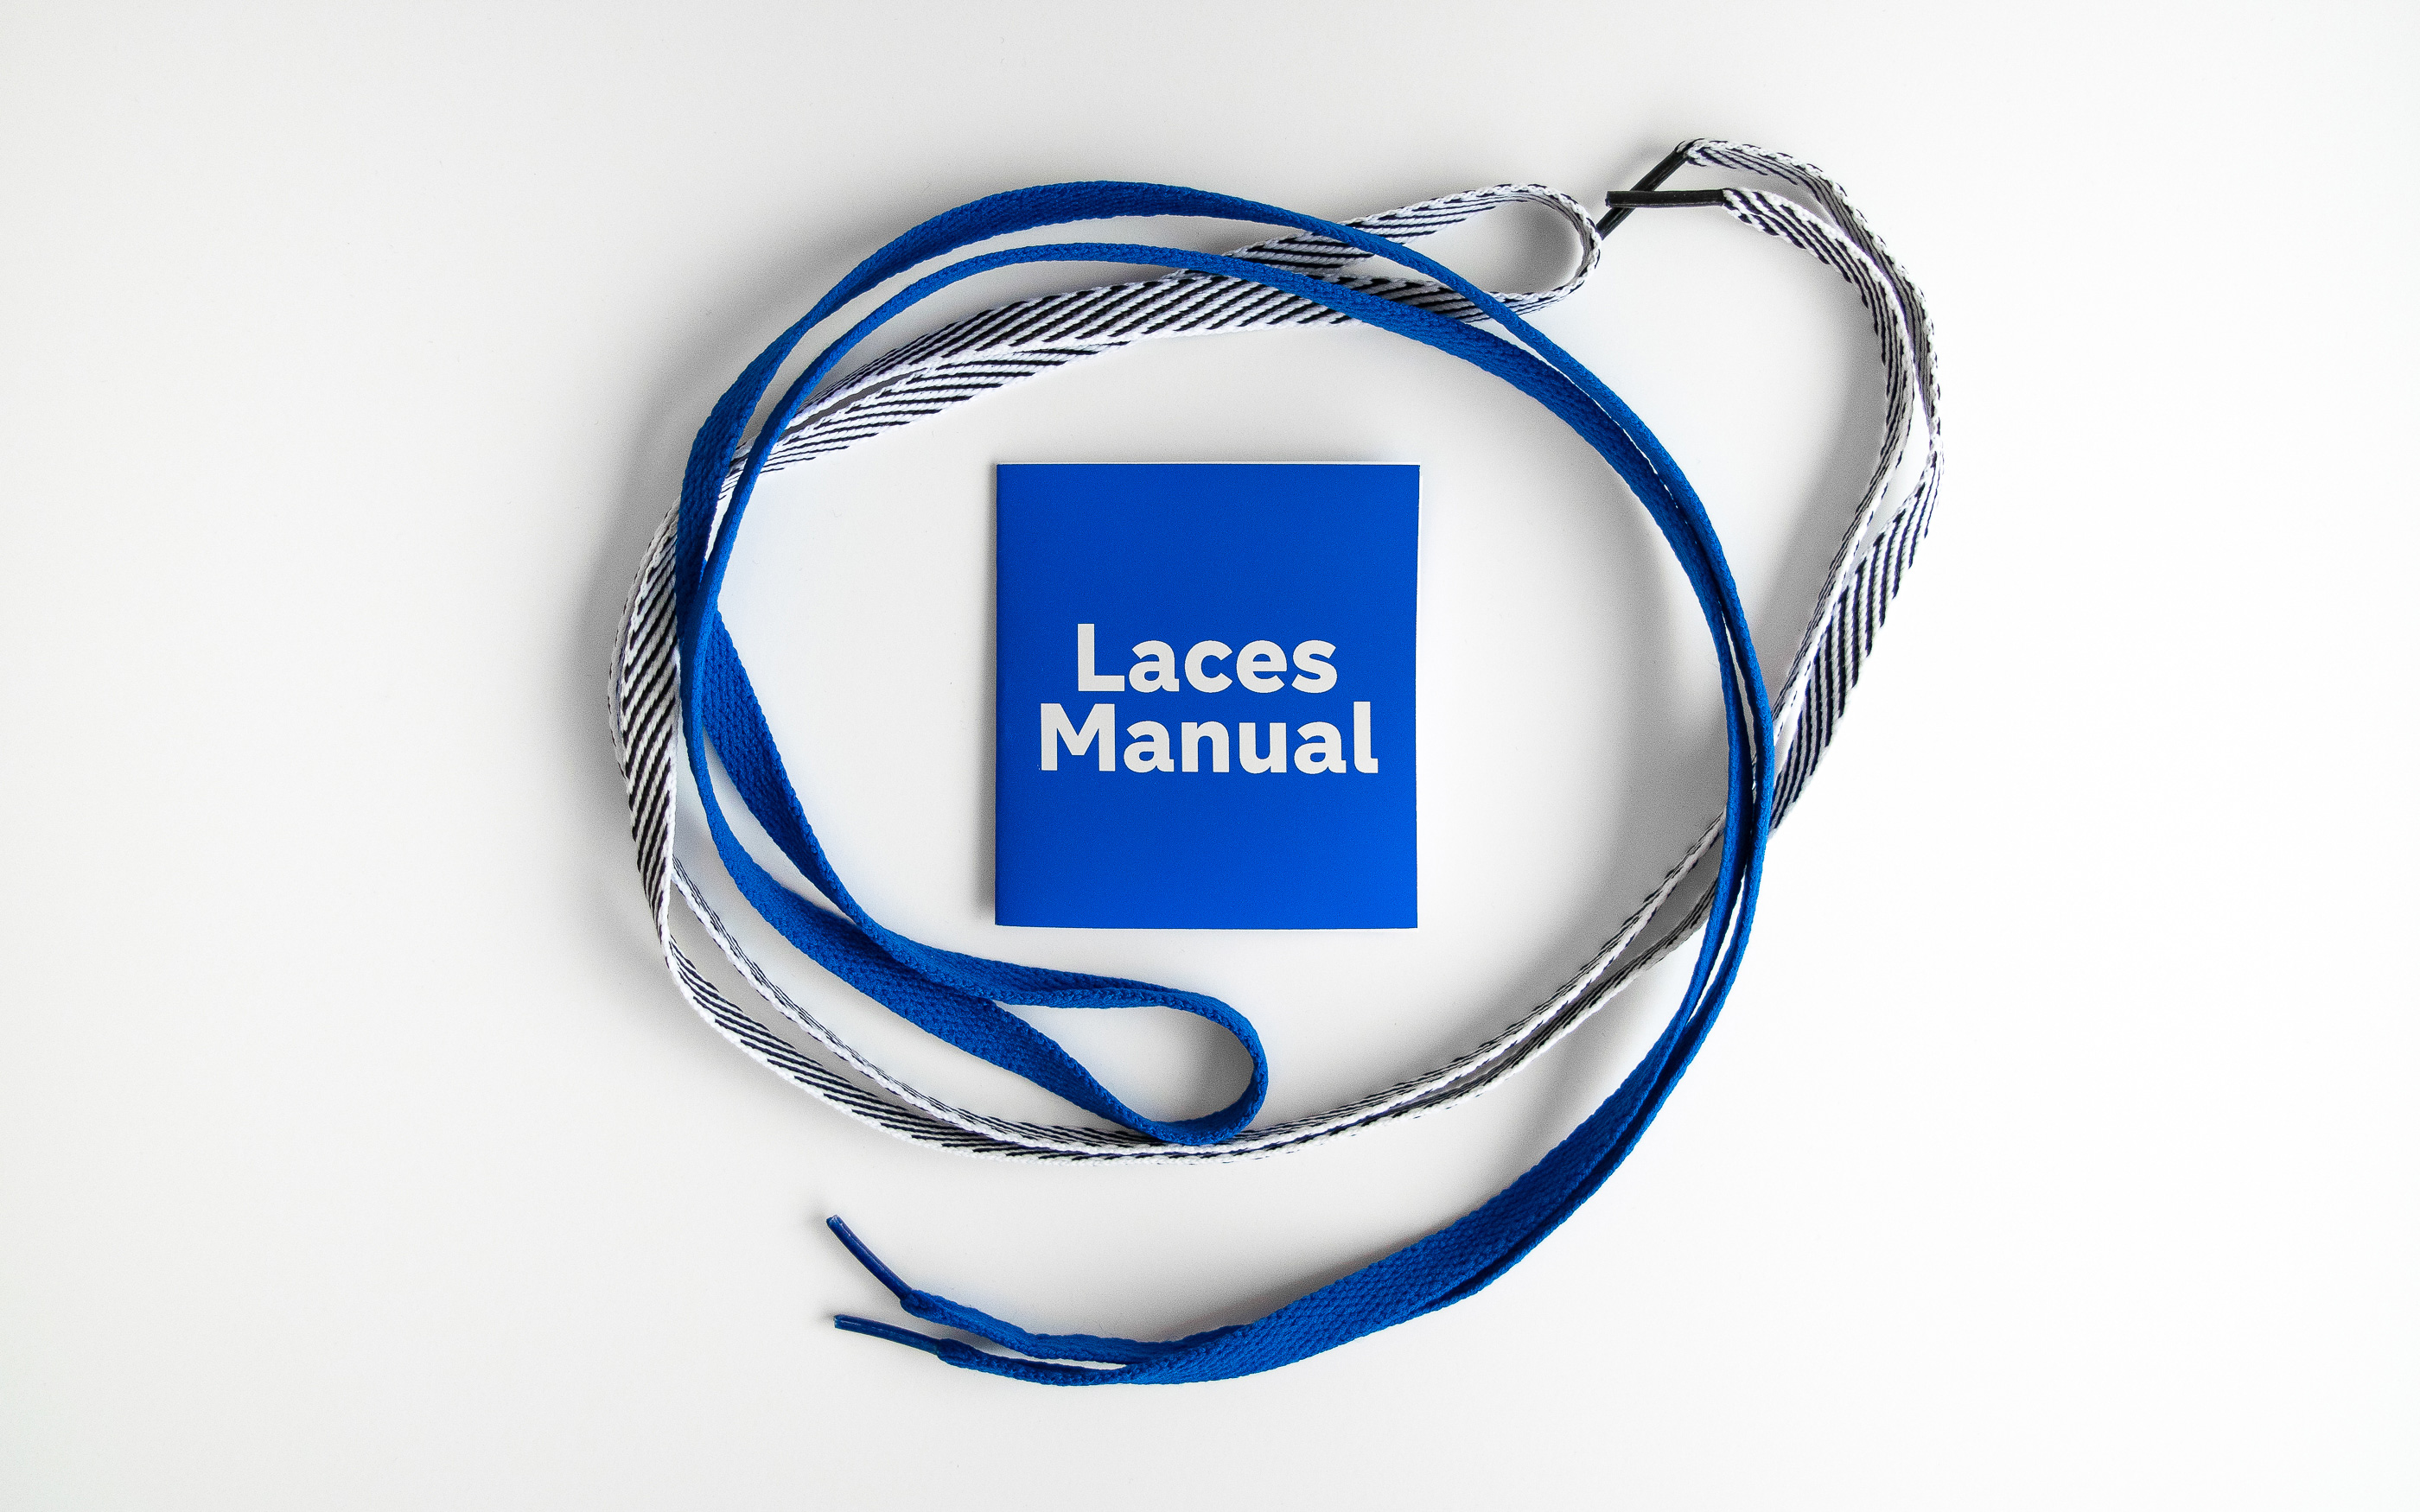 Laces and Manual